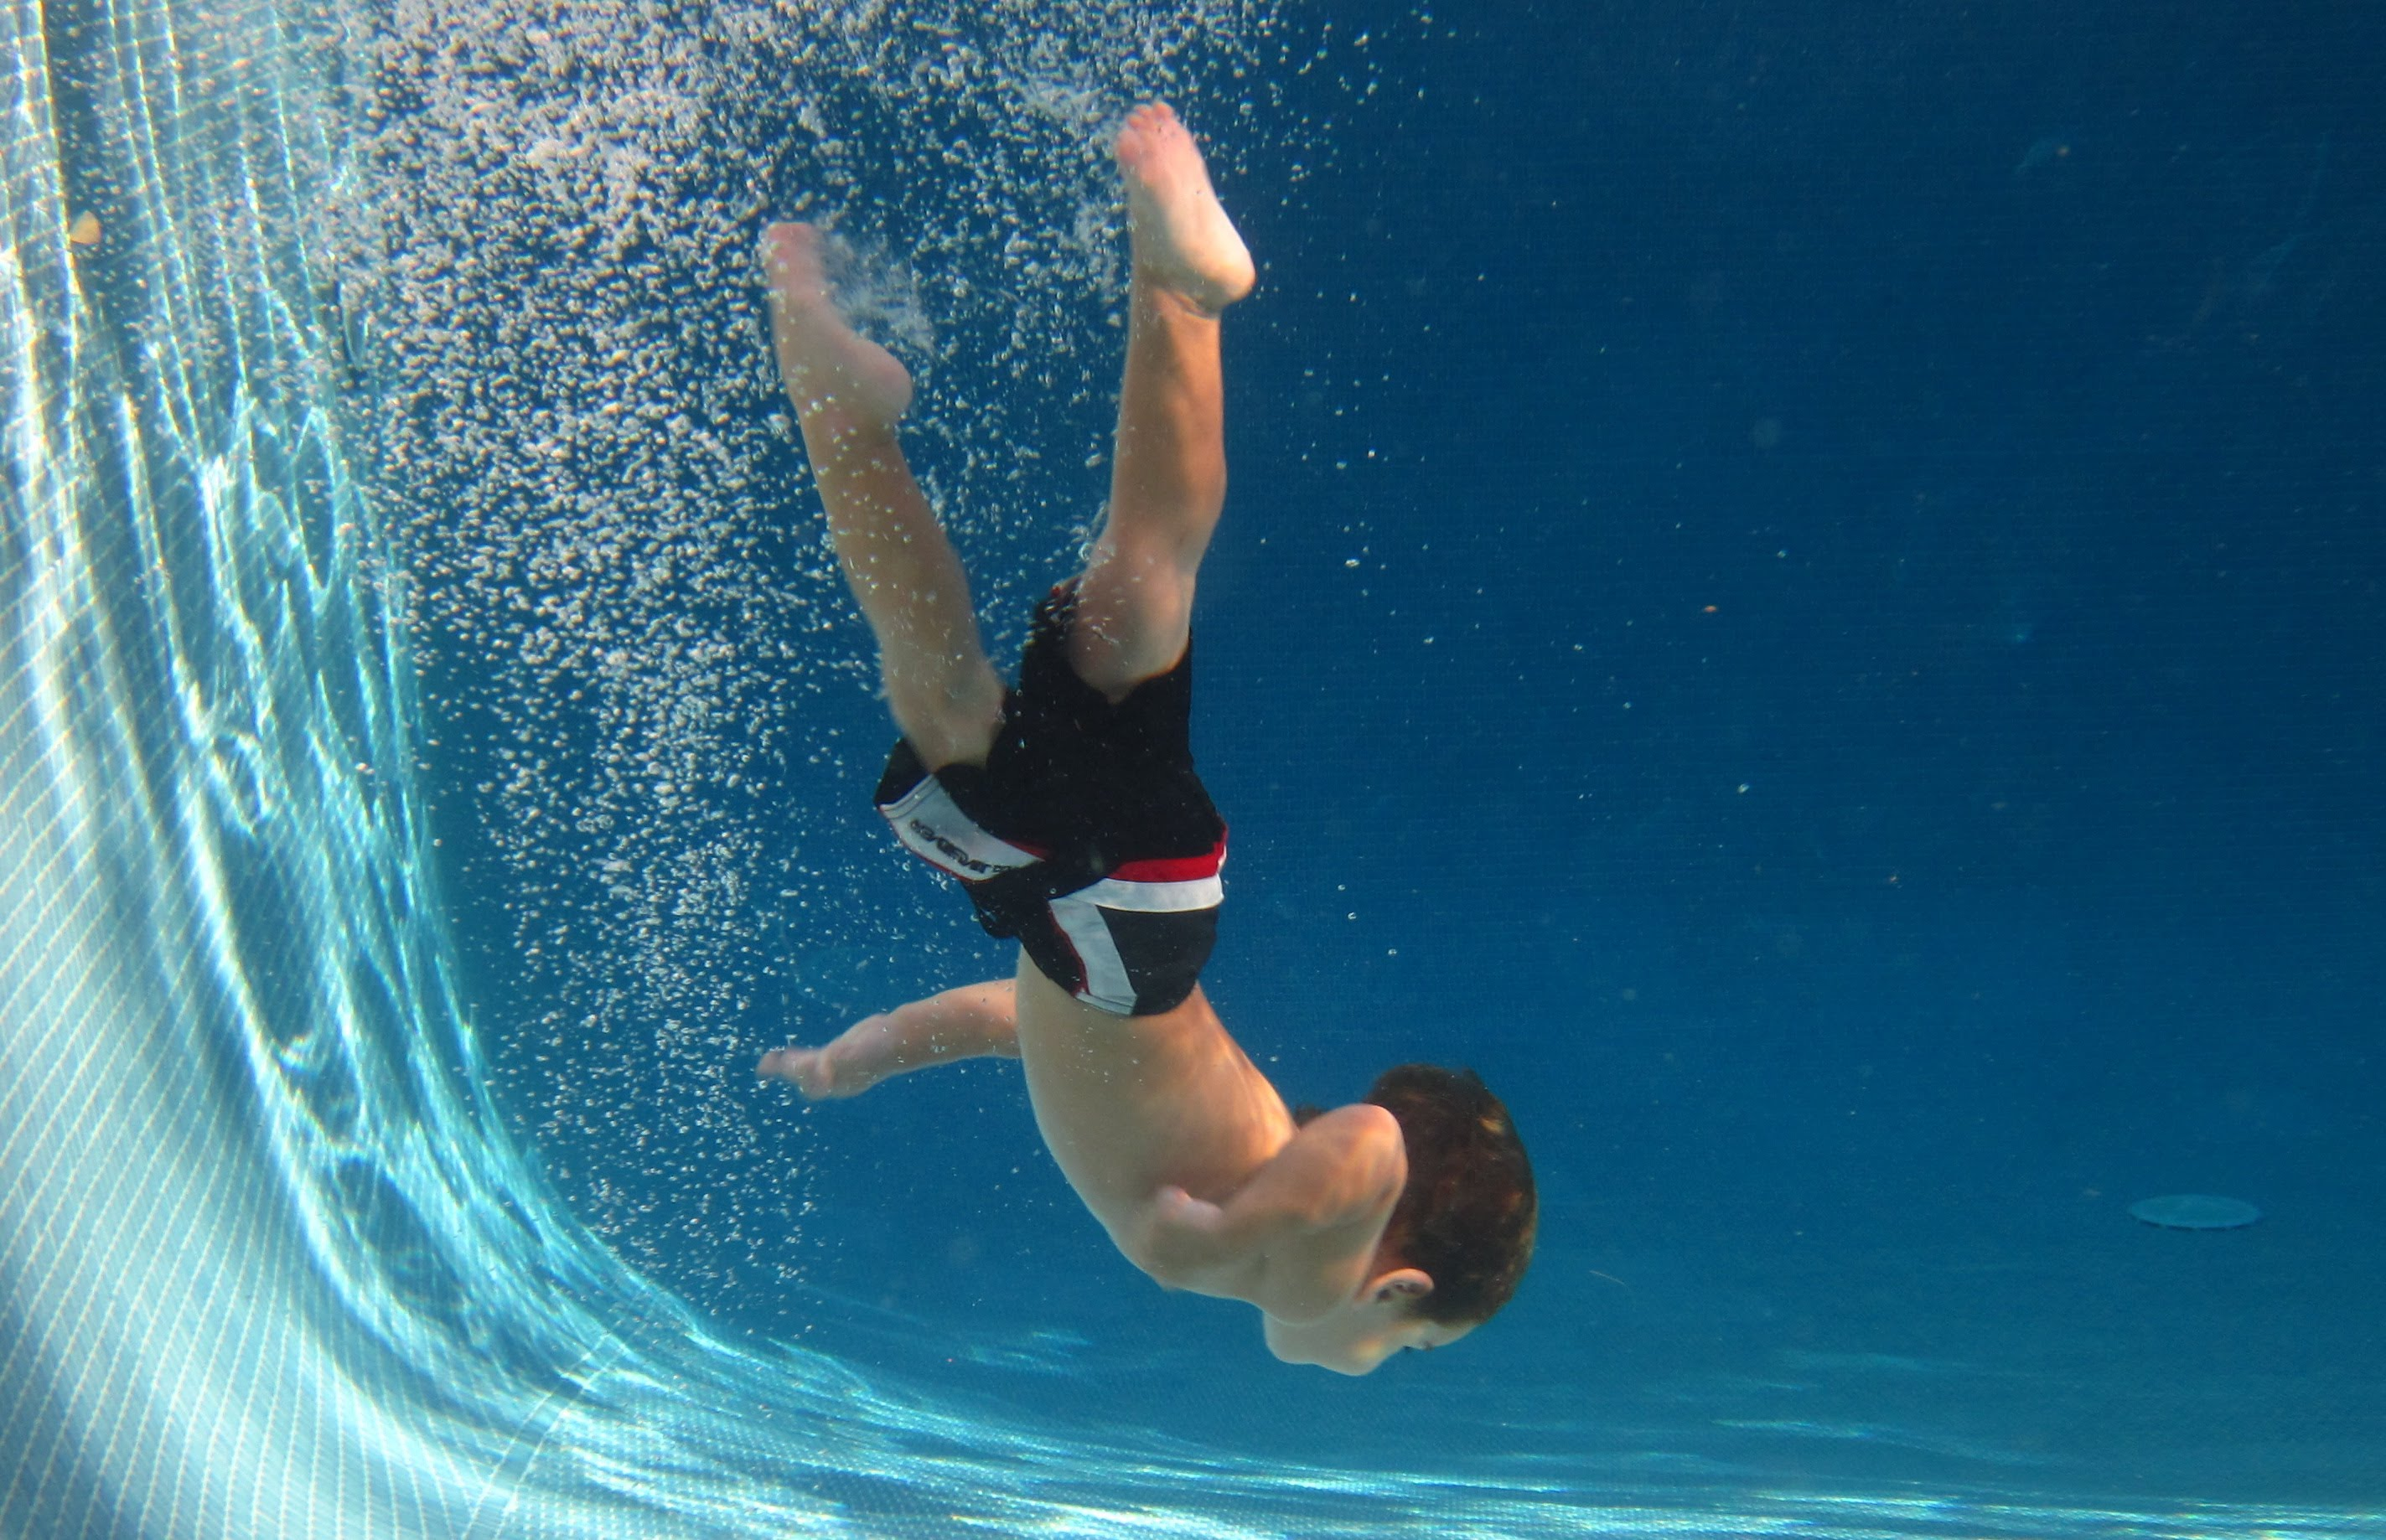 This 2 Year Old Boy Bravely Dives And Freely Swims In A 9 Foot Deep Pool Wow Amazing